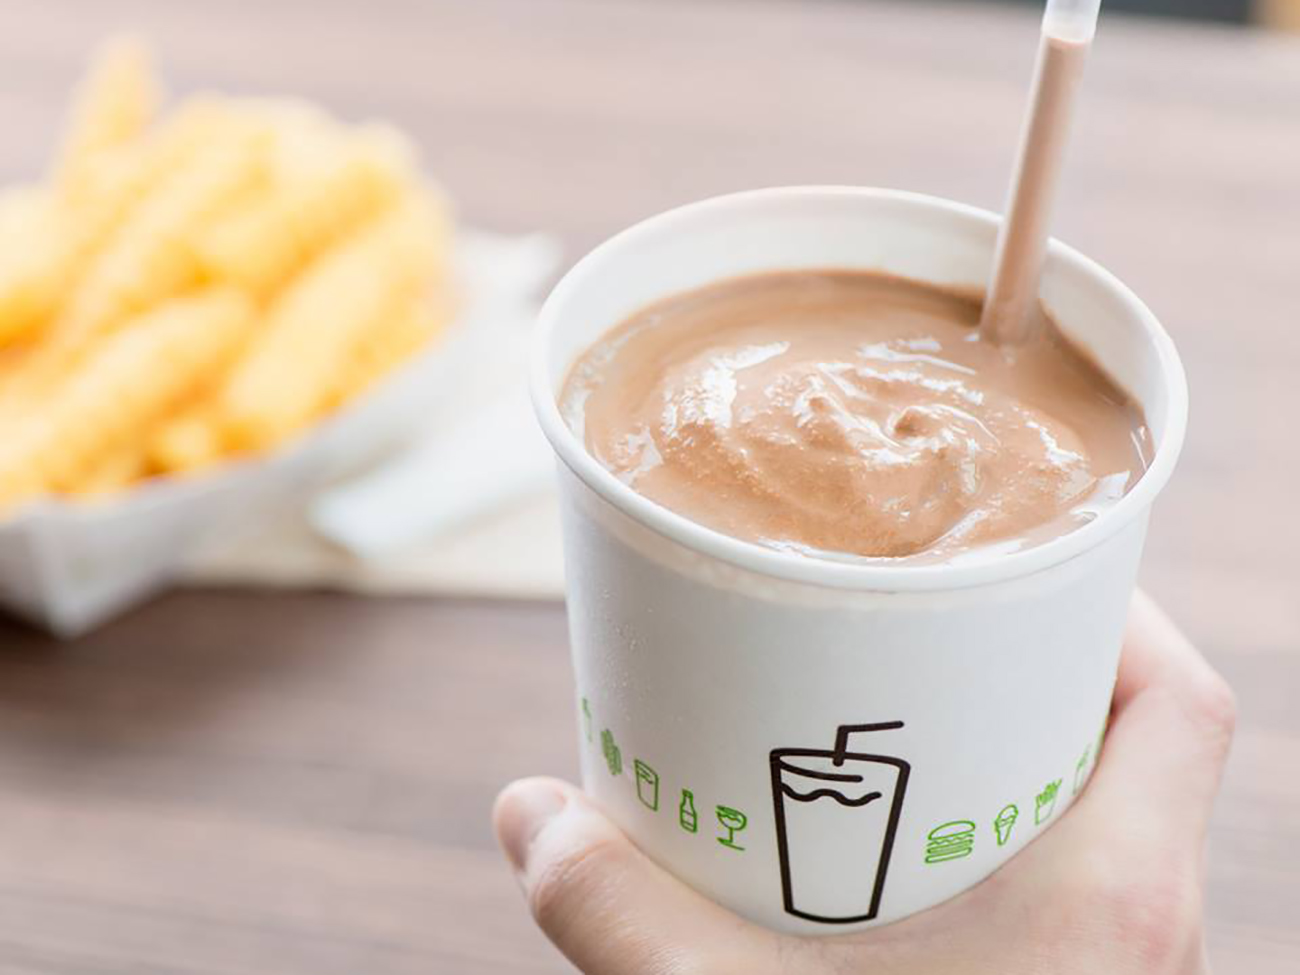 12 best spots to grab a milkshake when you're desperate to beat this heat